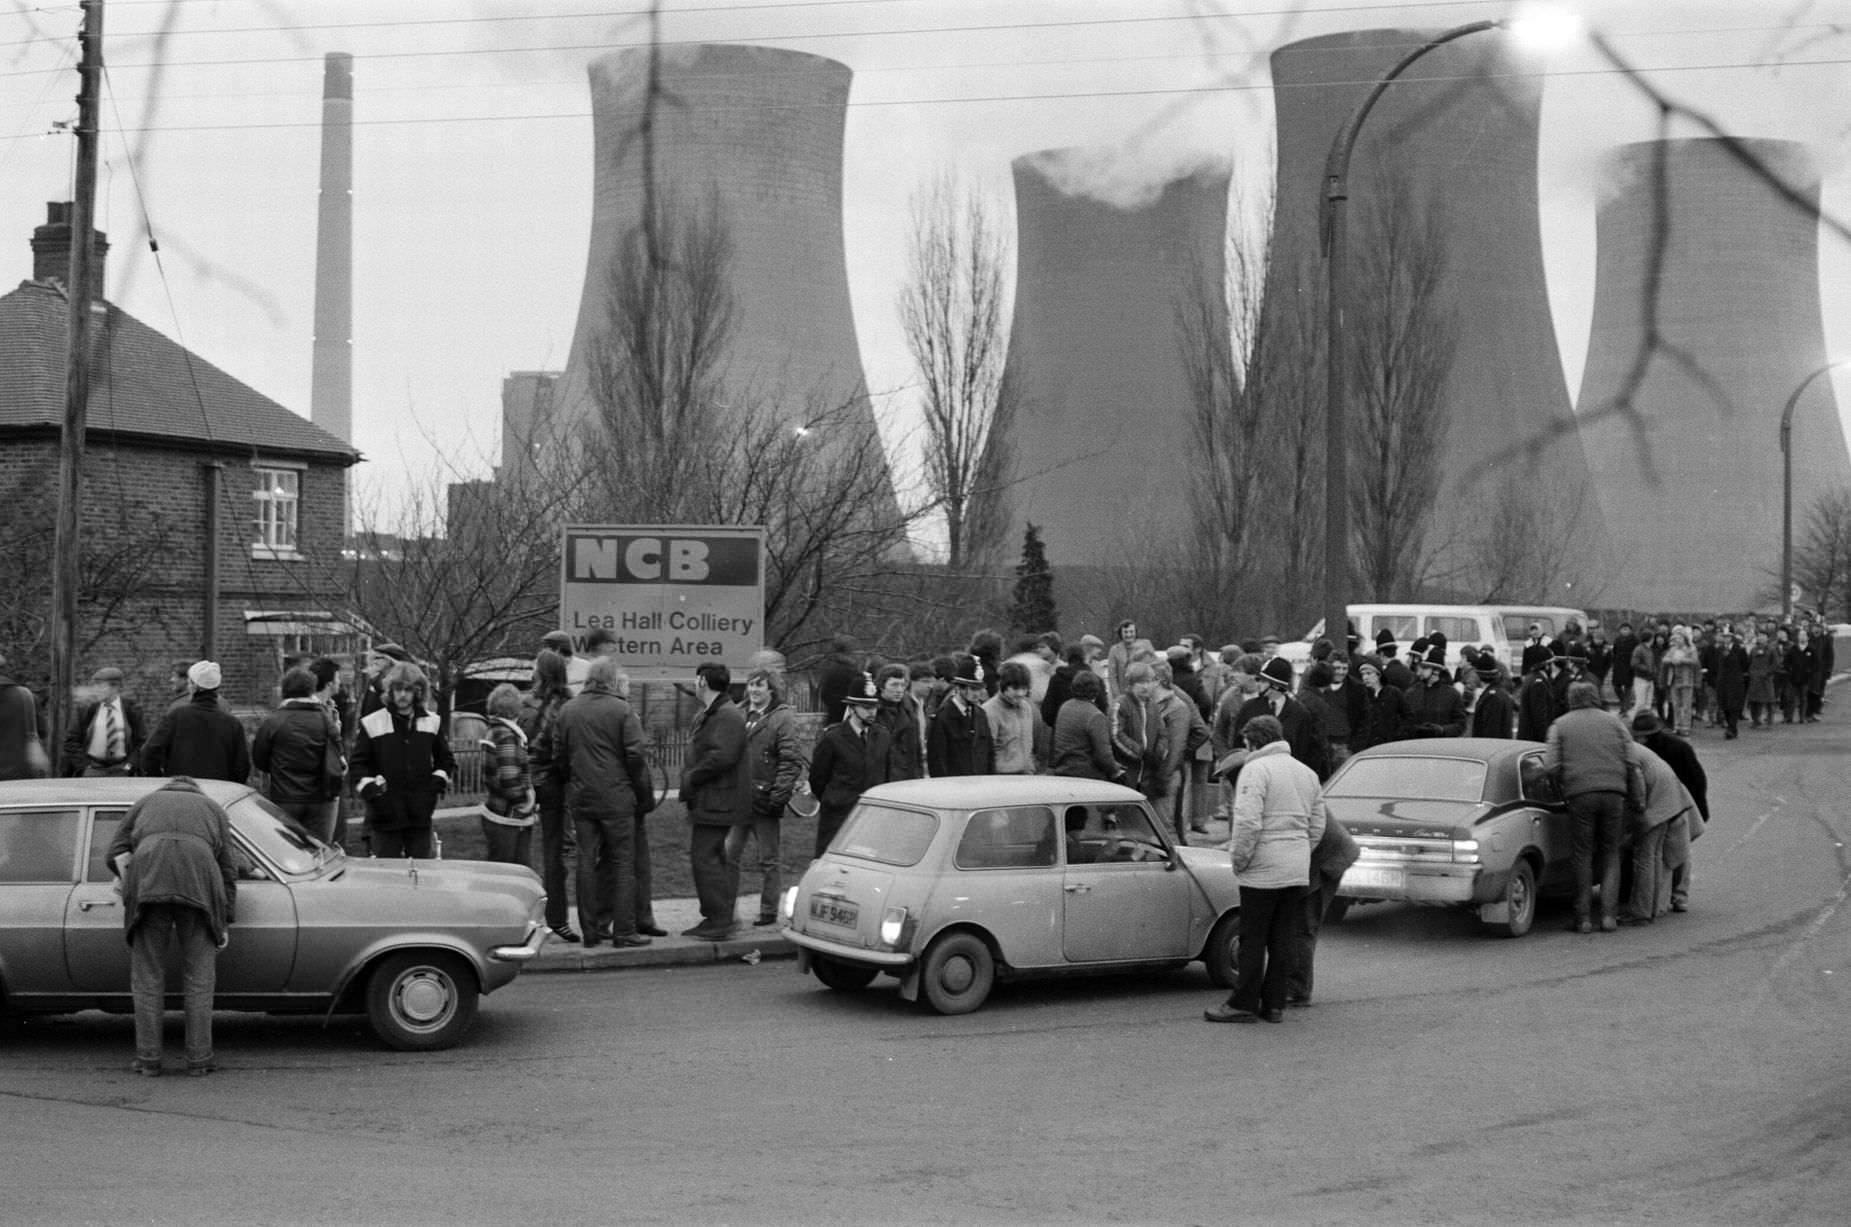 Pickets at Lea Hall Colliery, Rugeley, Staffordshire, Friday 16th March 1984.